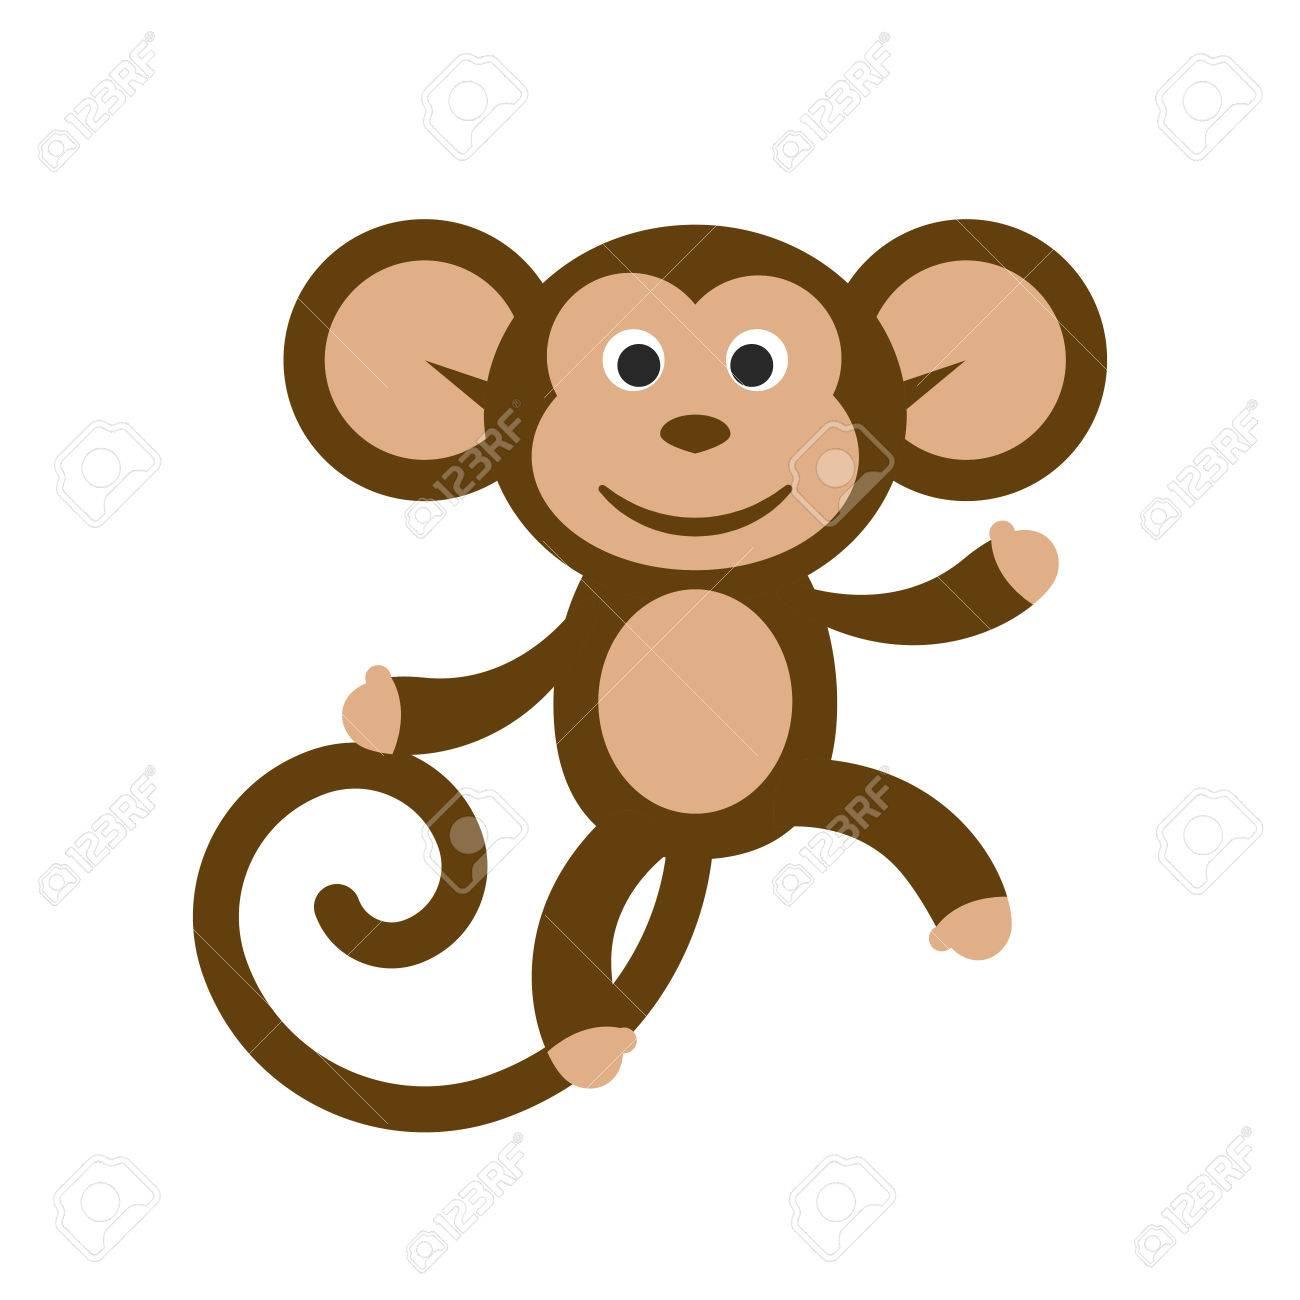 Royalty Free Monkey Clipart.